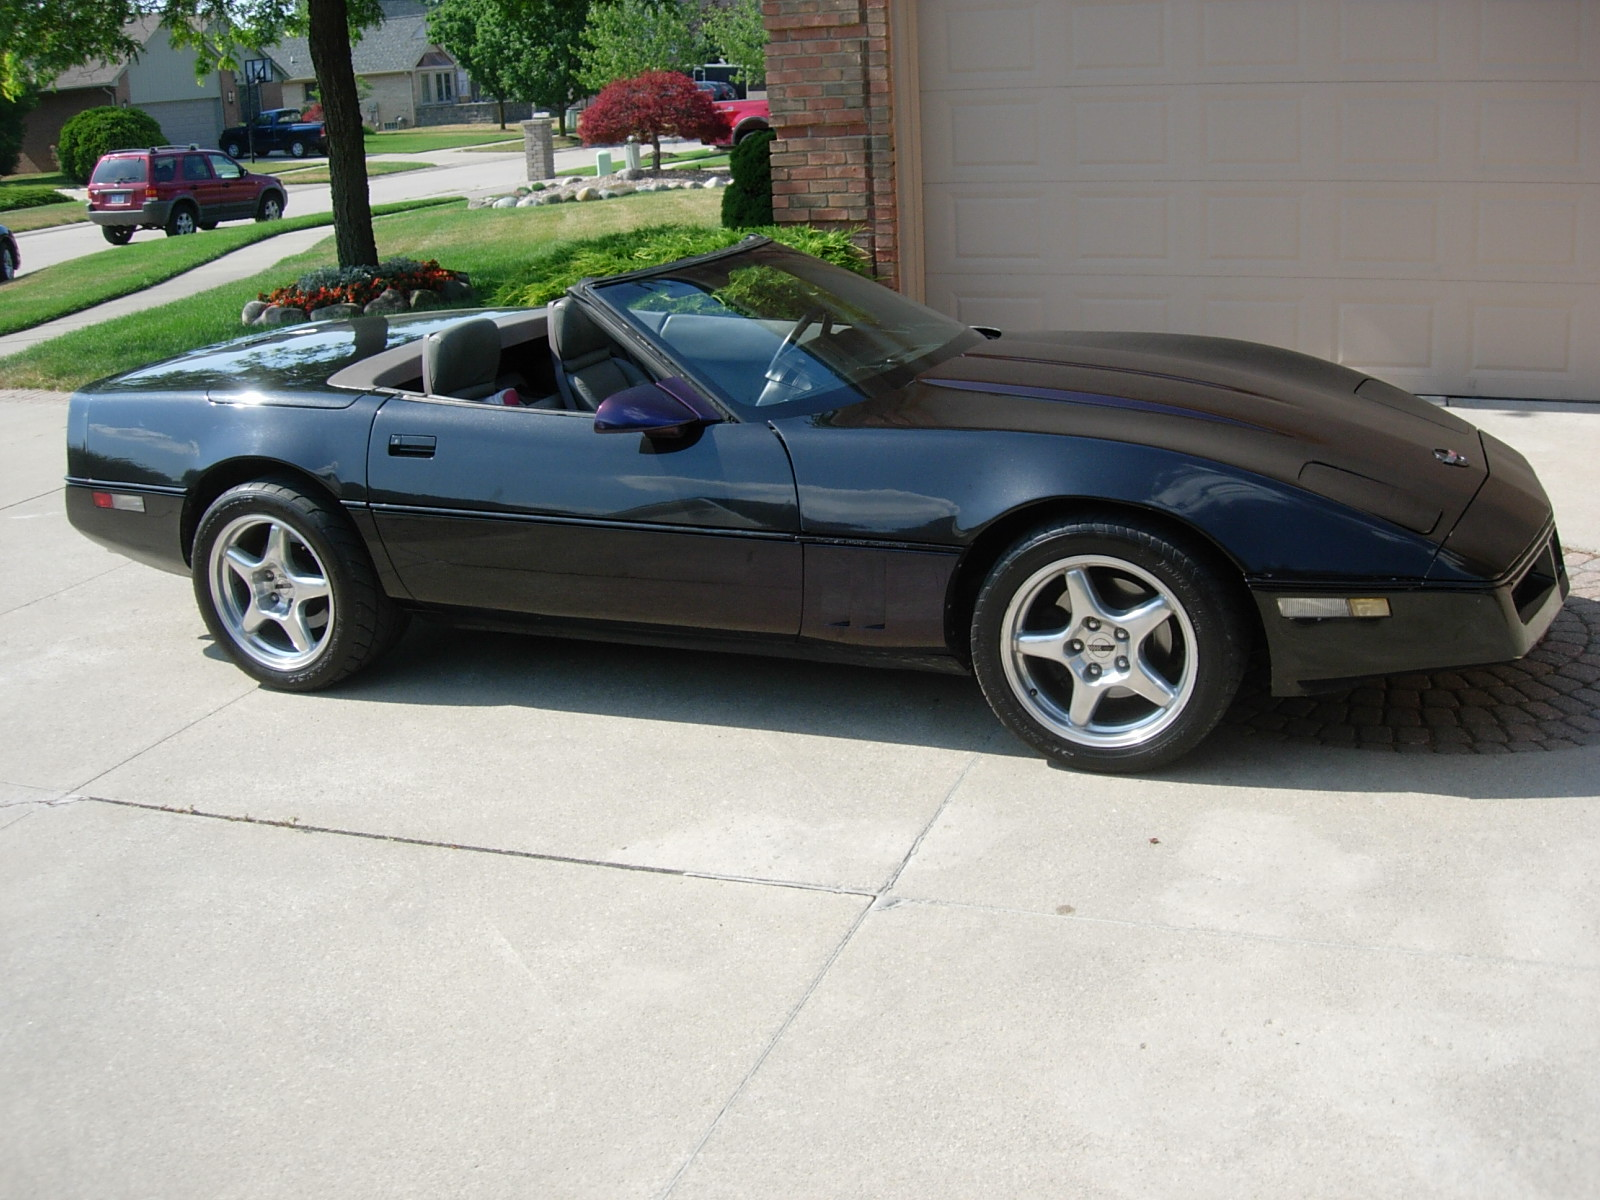 Picture of 1990 Chevrolet Corvette Convertible